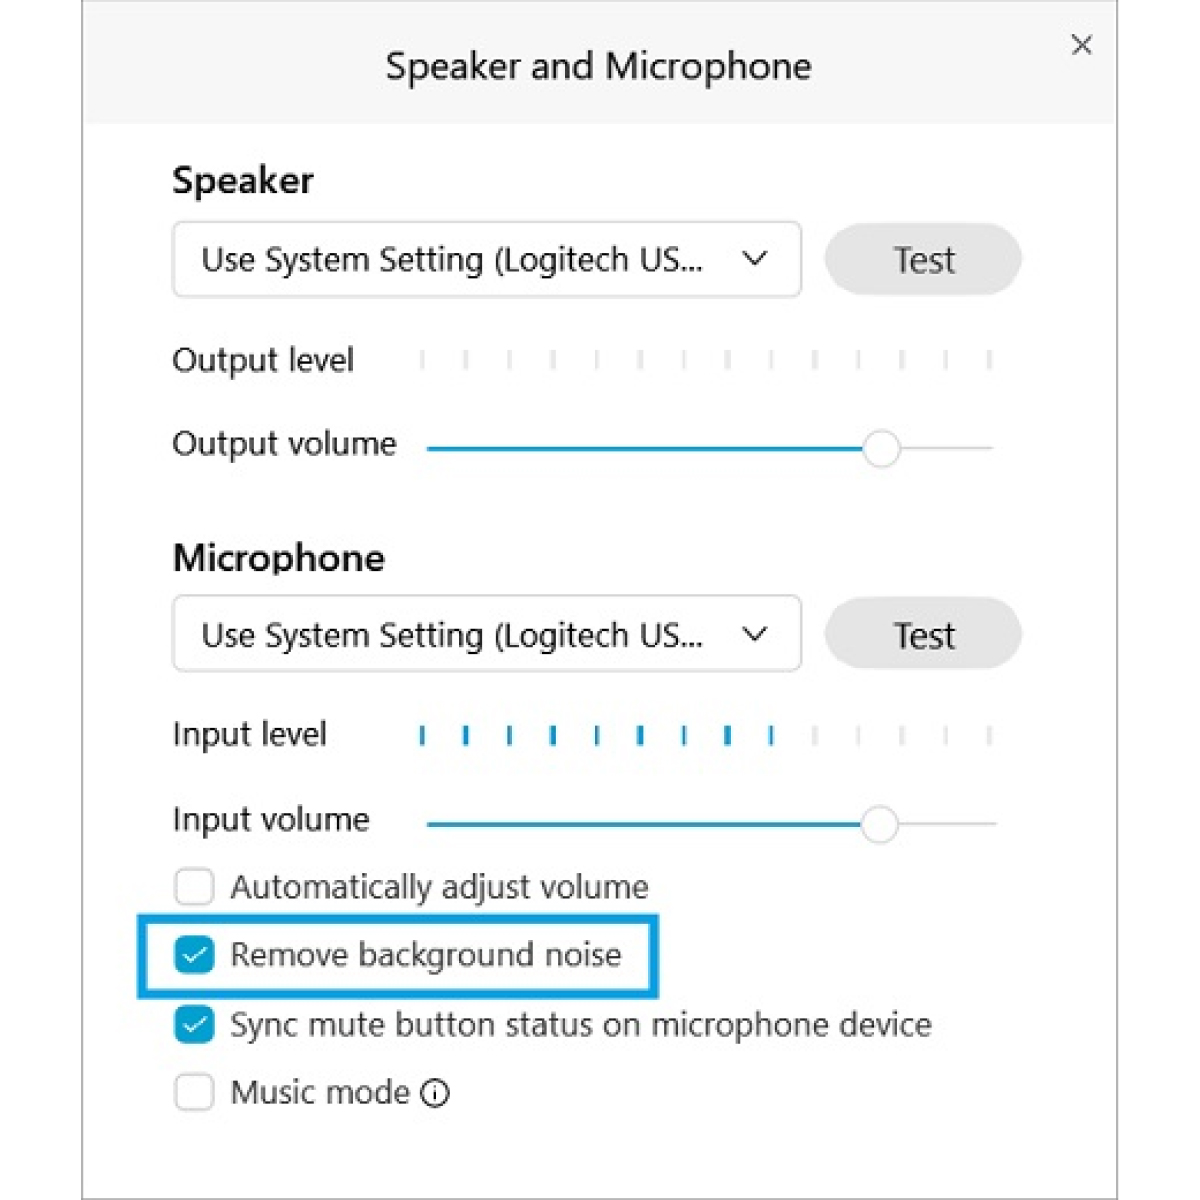 remove background noise UI and speaker and microphone